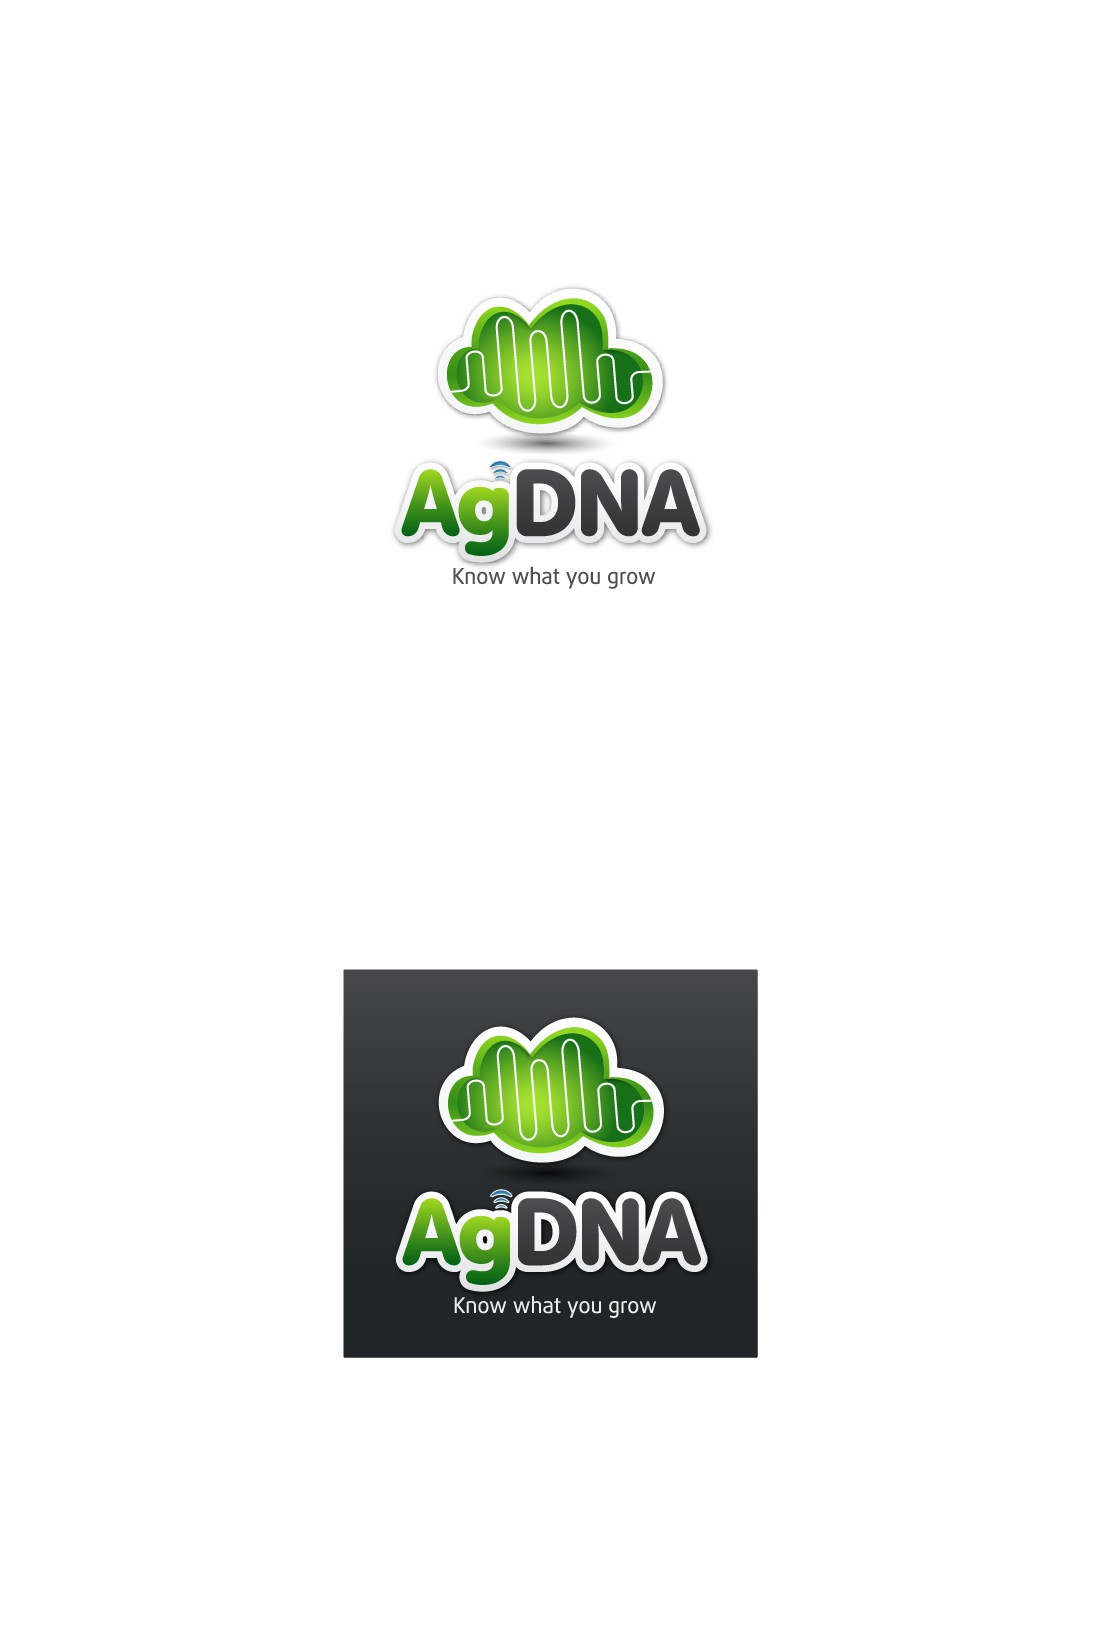 New logo wanted for AgDNA Farming App